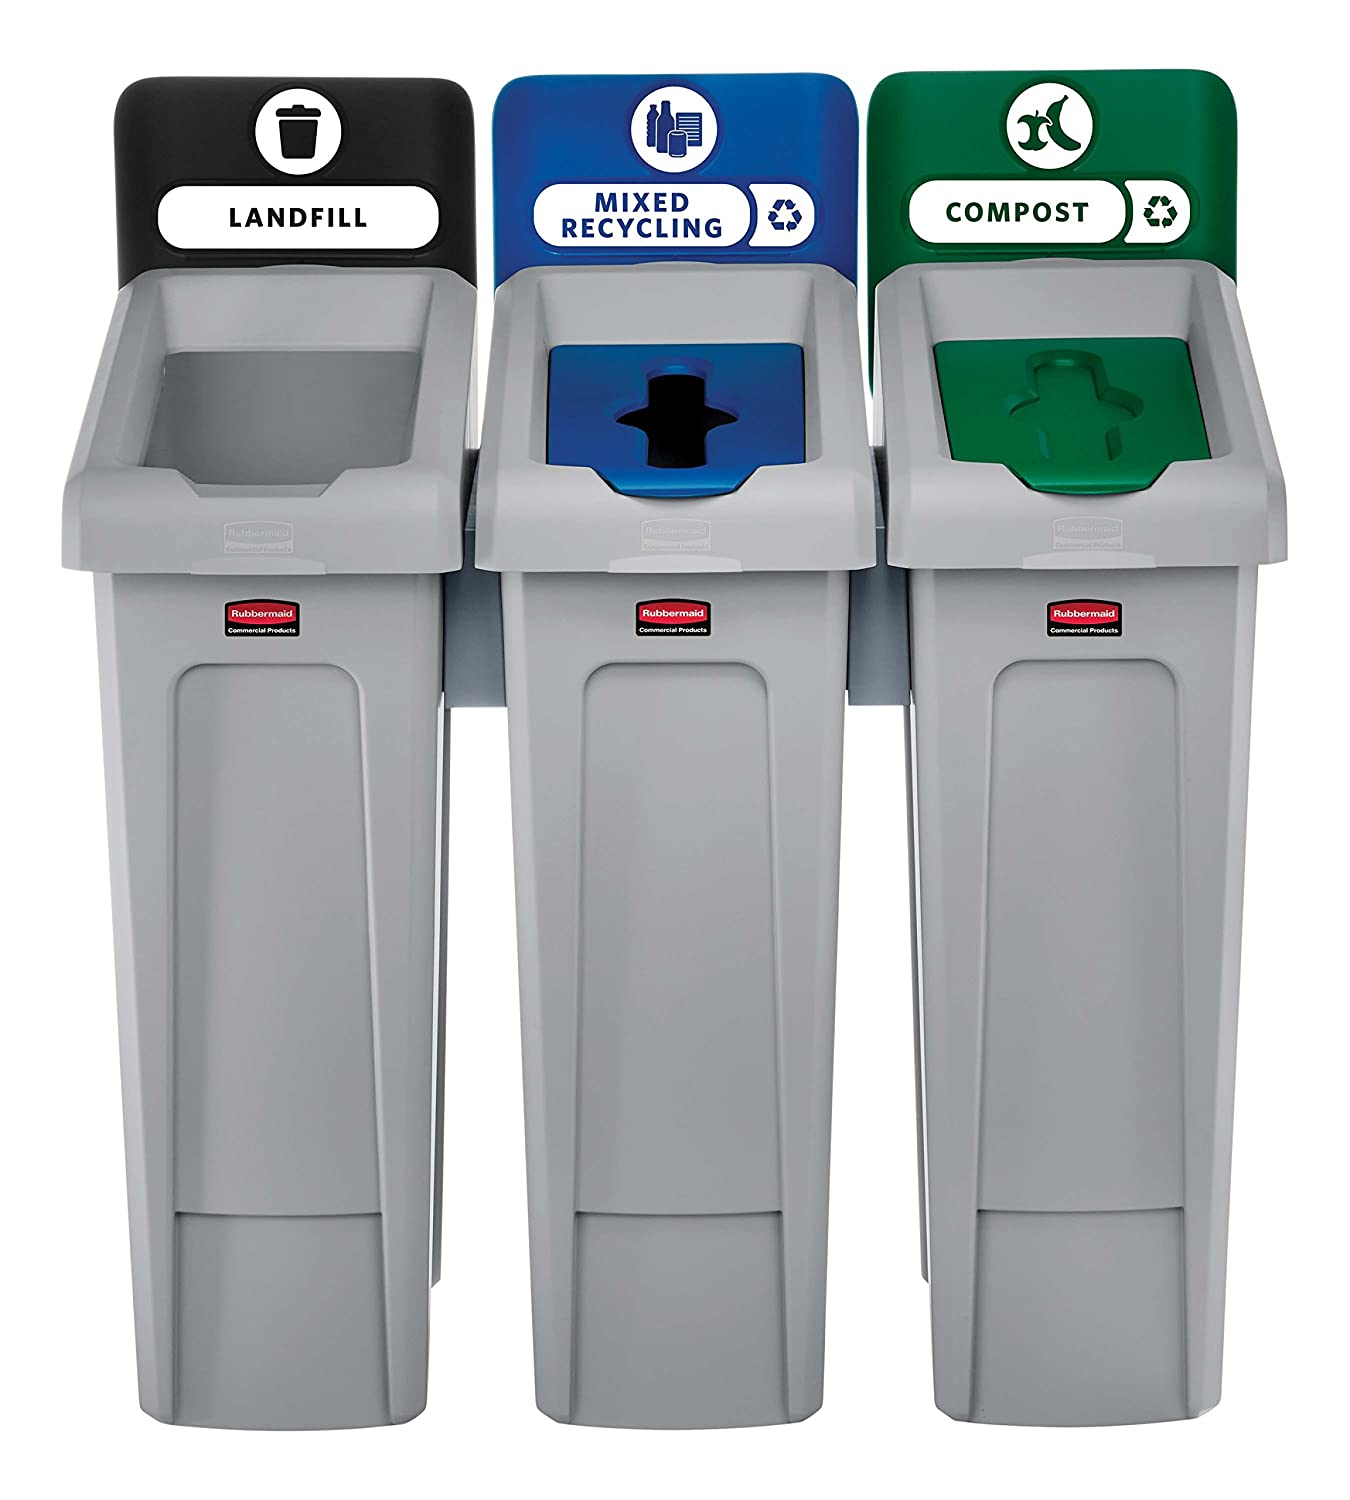 Rubbermaid Commercial Products 2007918 Slim Jim Recycling Station, 3 Stream Landfill/Mixed Recycling/Compost